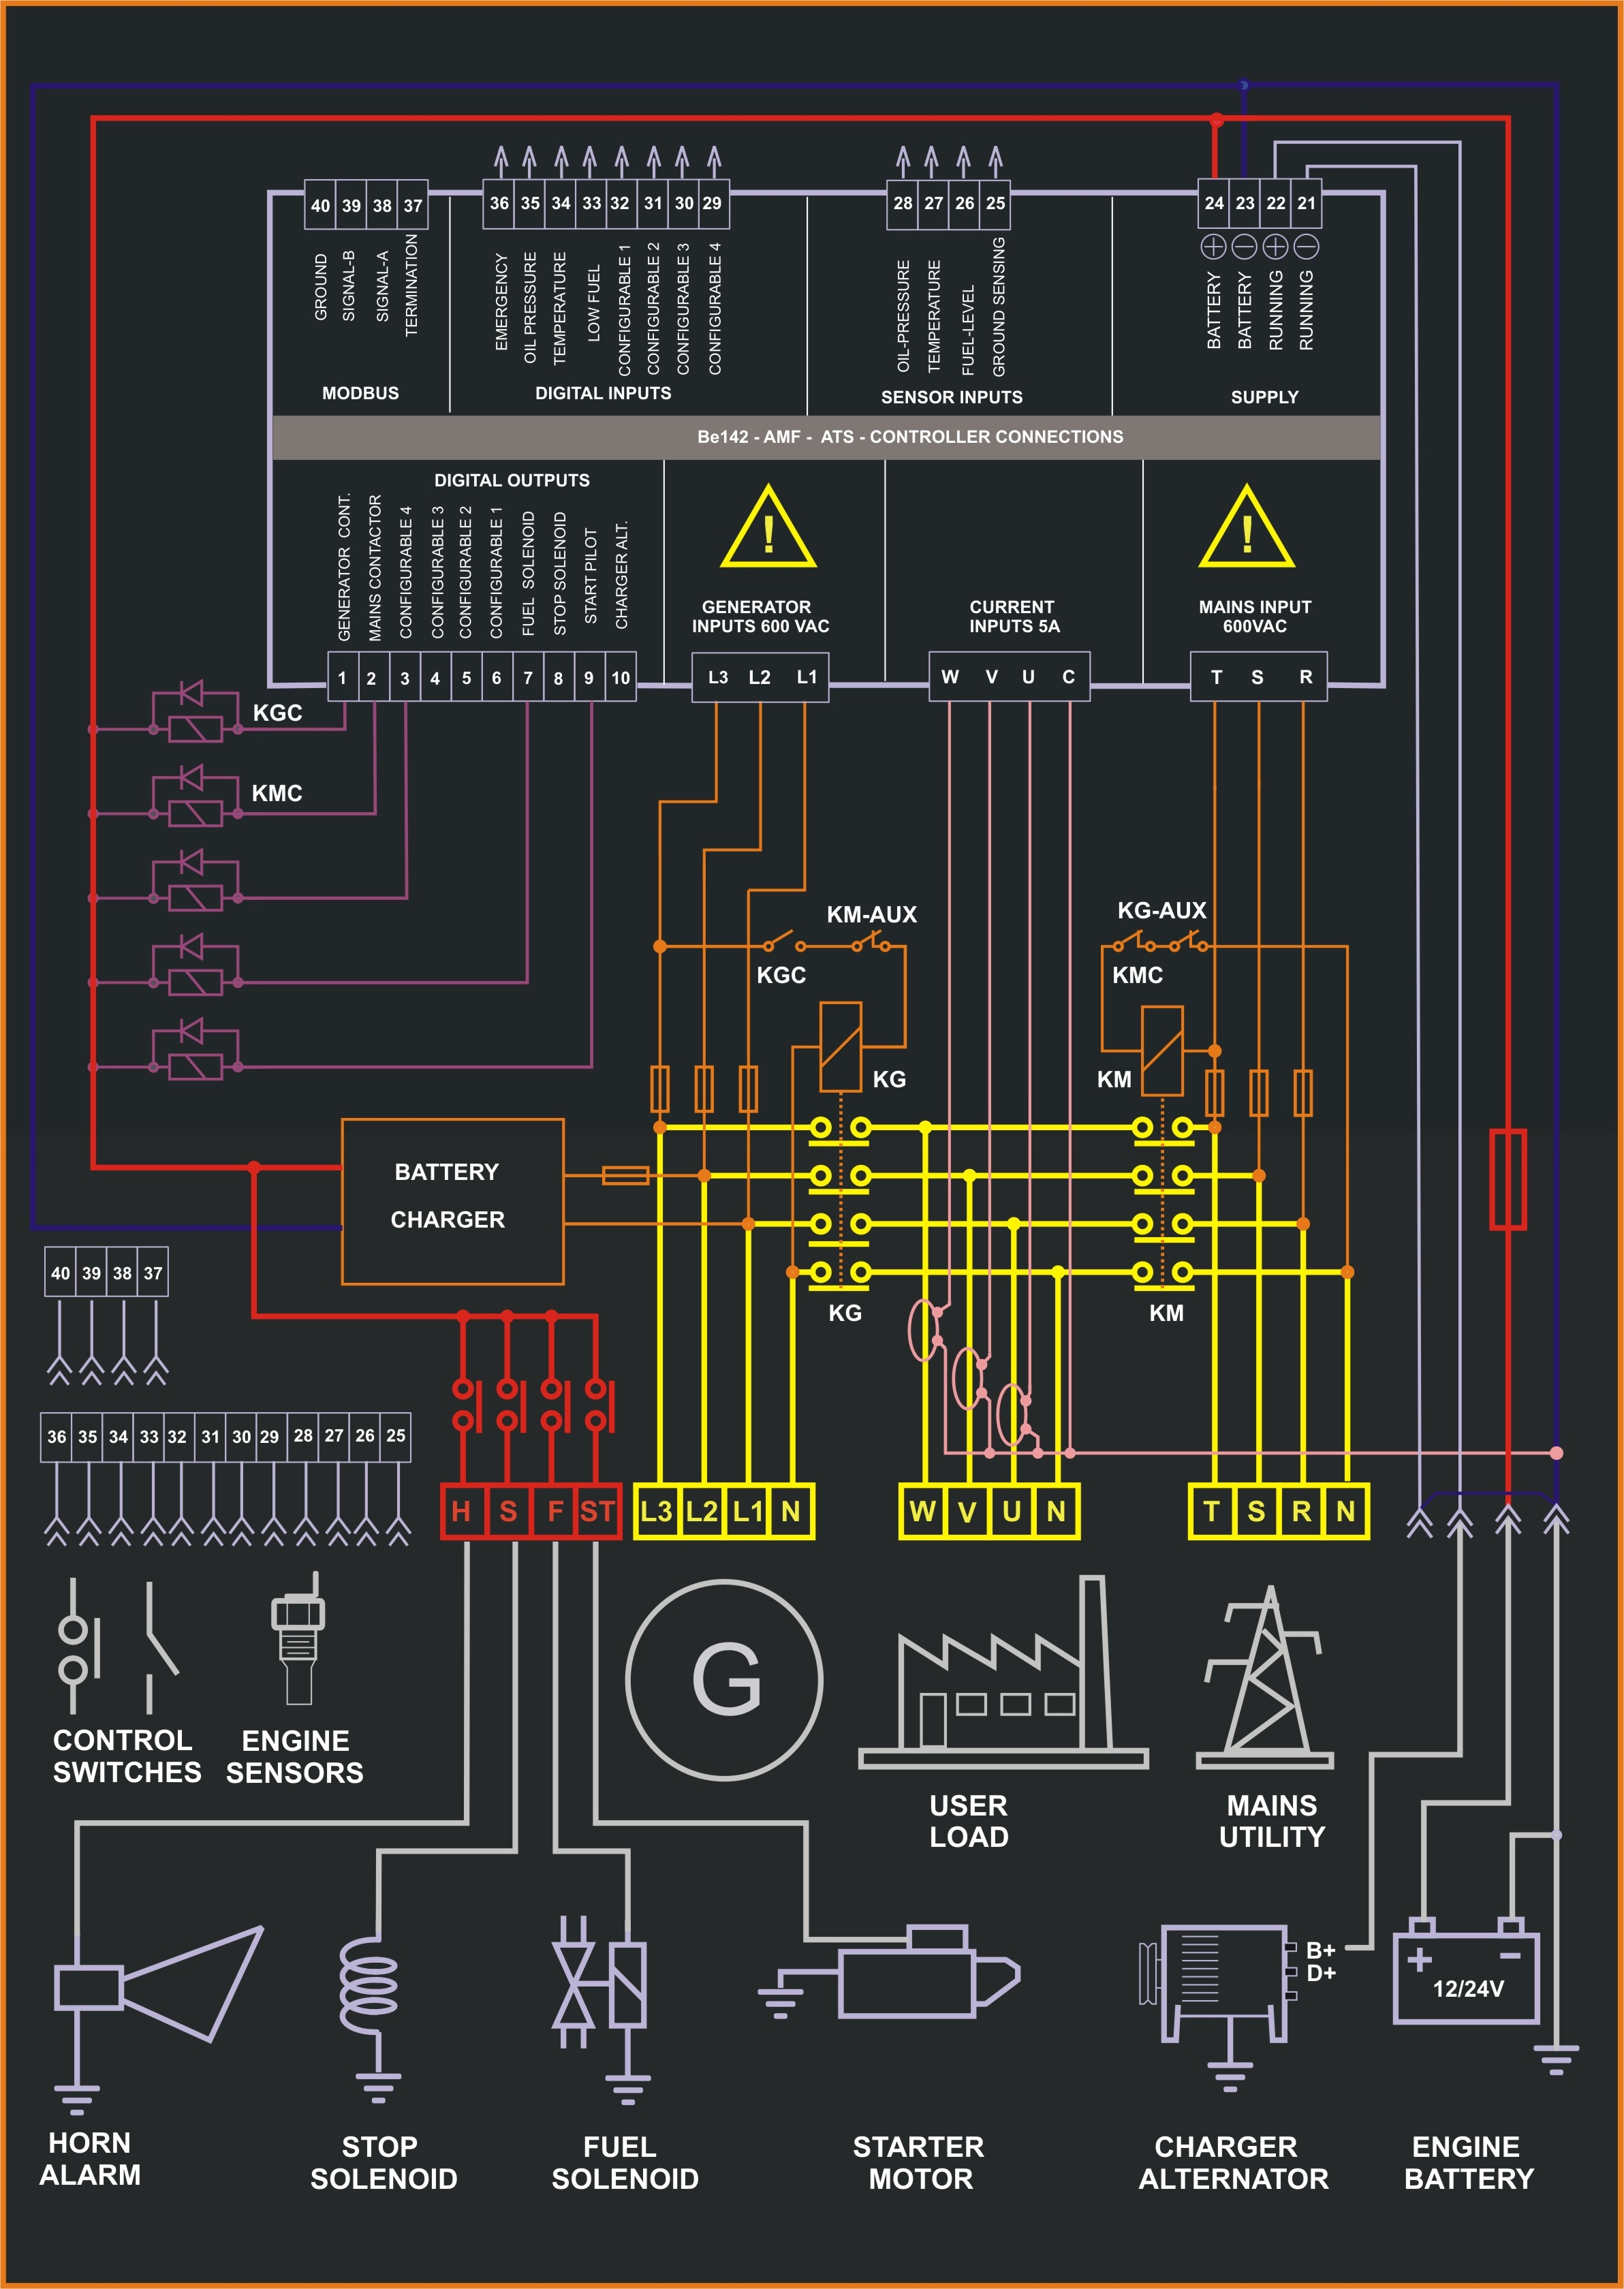 plc schematic diagram with Amf Control Panel Circuit Diagram Pdf on Electrical Symbols also Carrier Ac Wiring Diagrams as well Full likewise How to moreover Amf Control Panel Circuit Diagram Pdf.